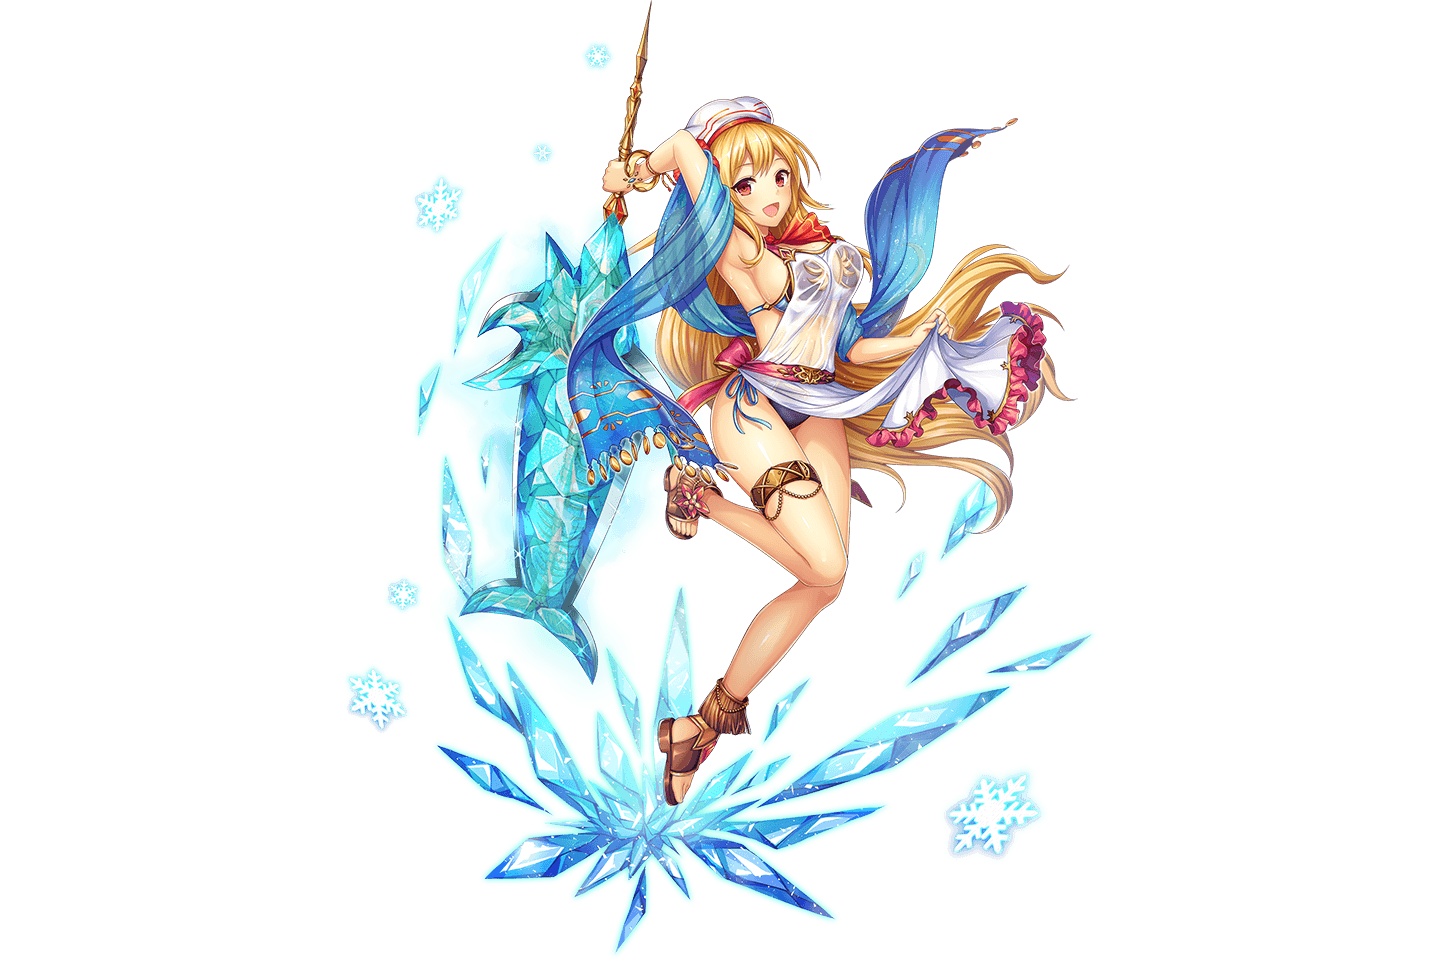 (Ice Sword Fish) Hestia